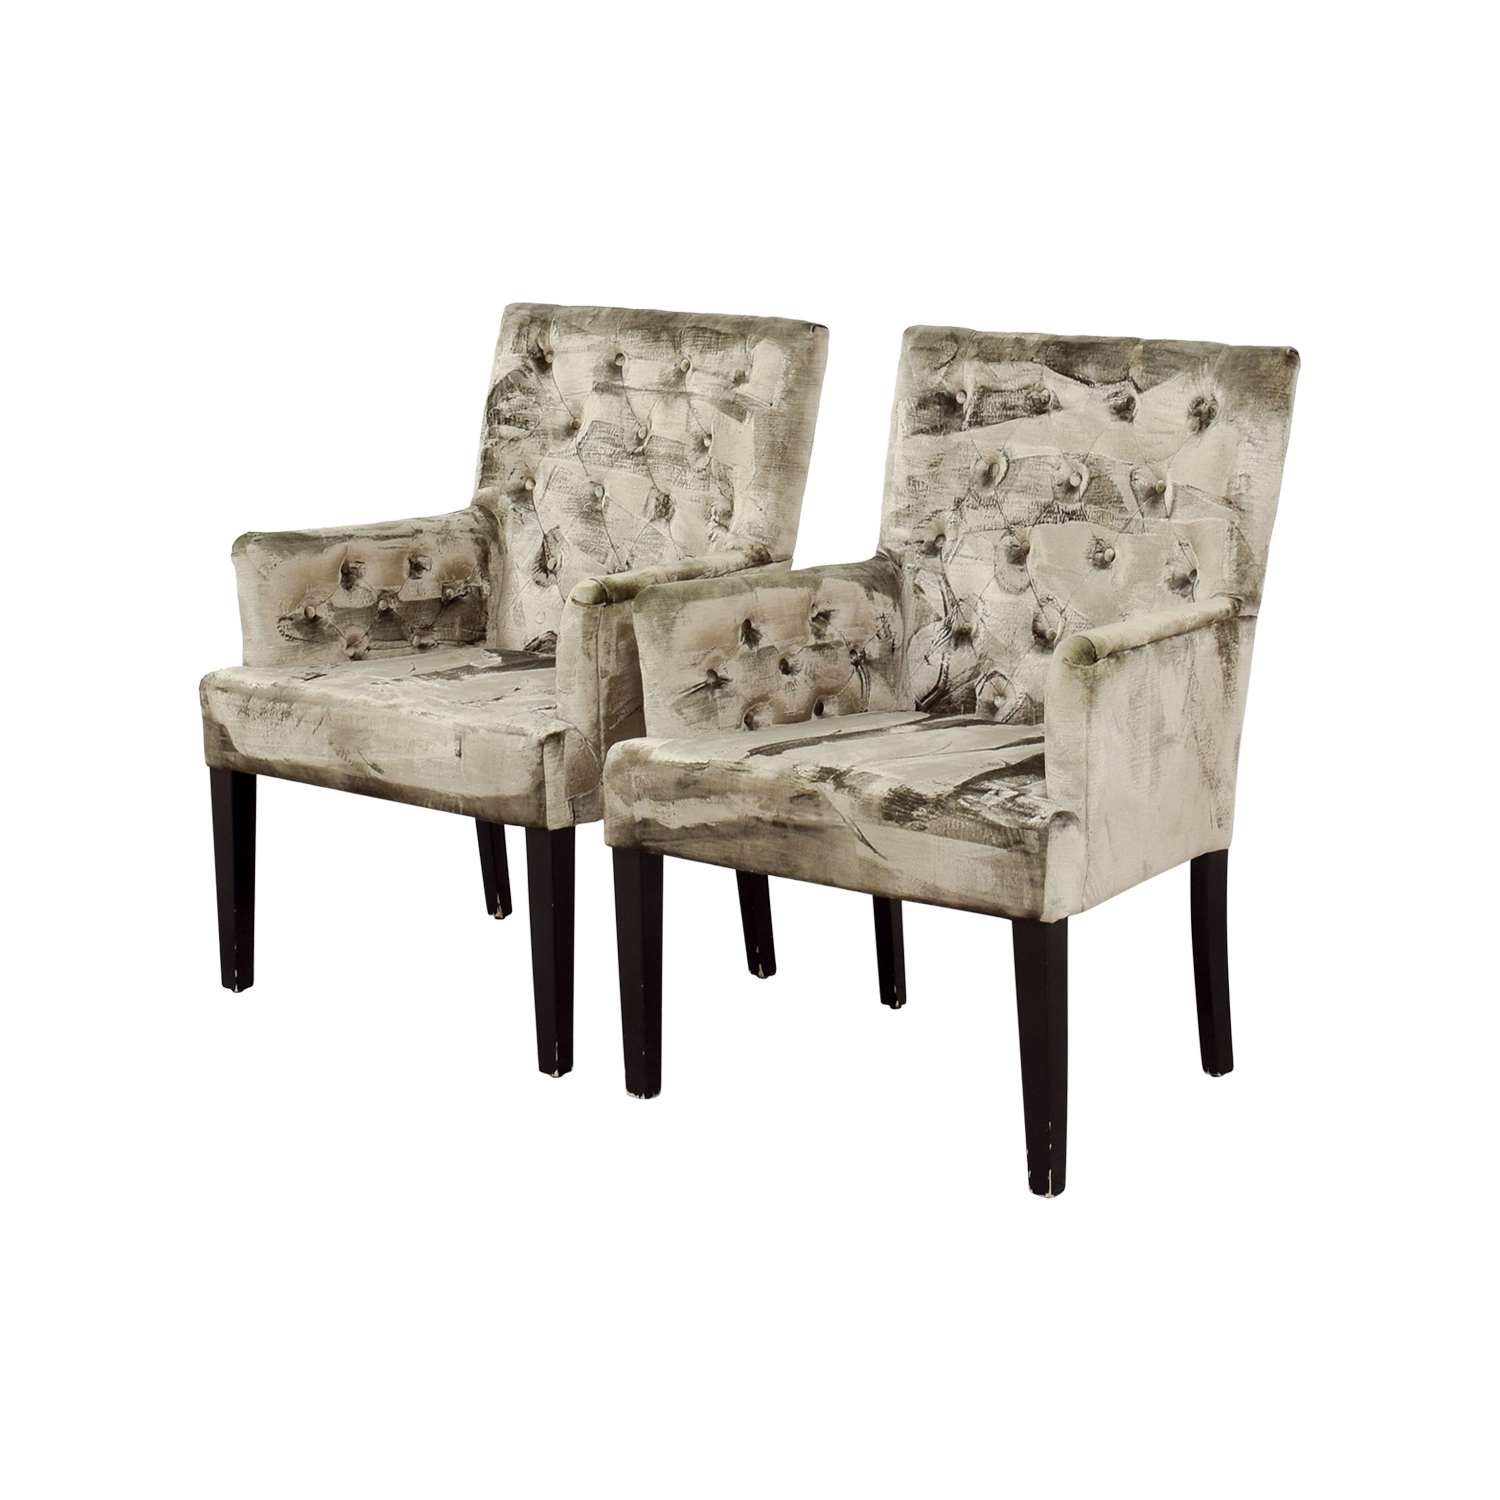 [%90% Off – Z Gallerie Z Gallerie Lola Bella Grey Tufted Arm Chairs In Trendy Lola Side Chairs|Lola Side Chairs Regarding Best And Newest 90% Off – Z Gallerie Z Gallerie Lola Bella Grey Tufted Arm Chairs|Best And Newest Lola Side Chairs Pertaining To 90% Off – Z Gallerie Z Gallerie Lola Bella Grey Tufted Arm Chairs|Preferred 90% Off – Z Gallerie Z Gallerie Lola Bella Grey Tufted Arm Chairs Inside Lola Side Chairs%] (View 1 of 20)